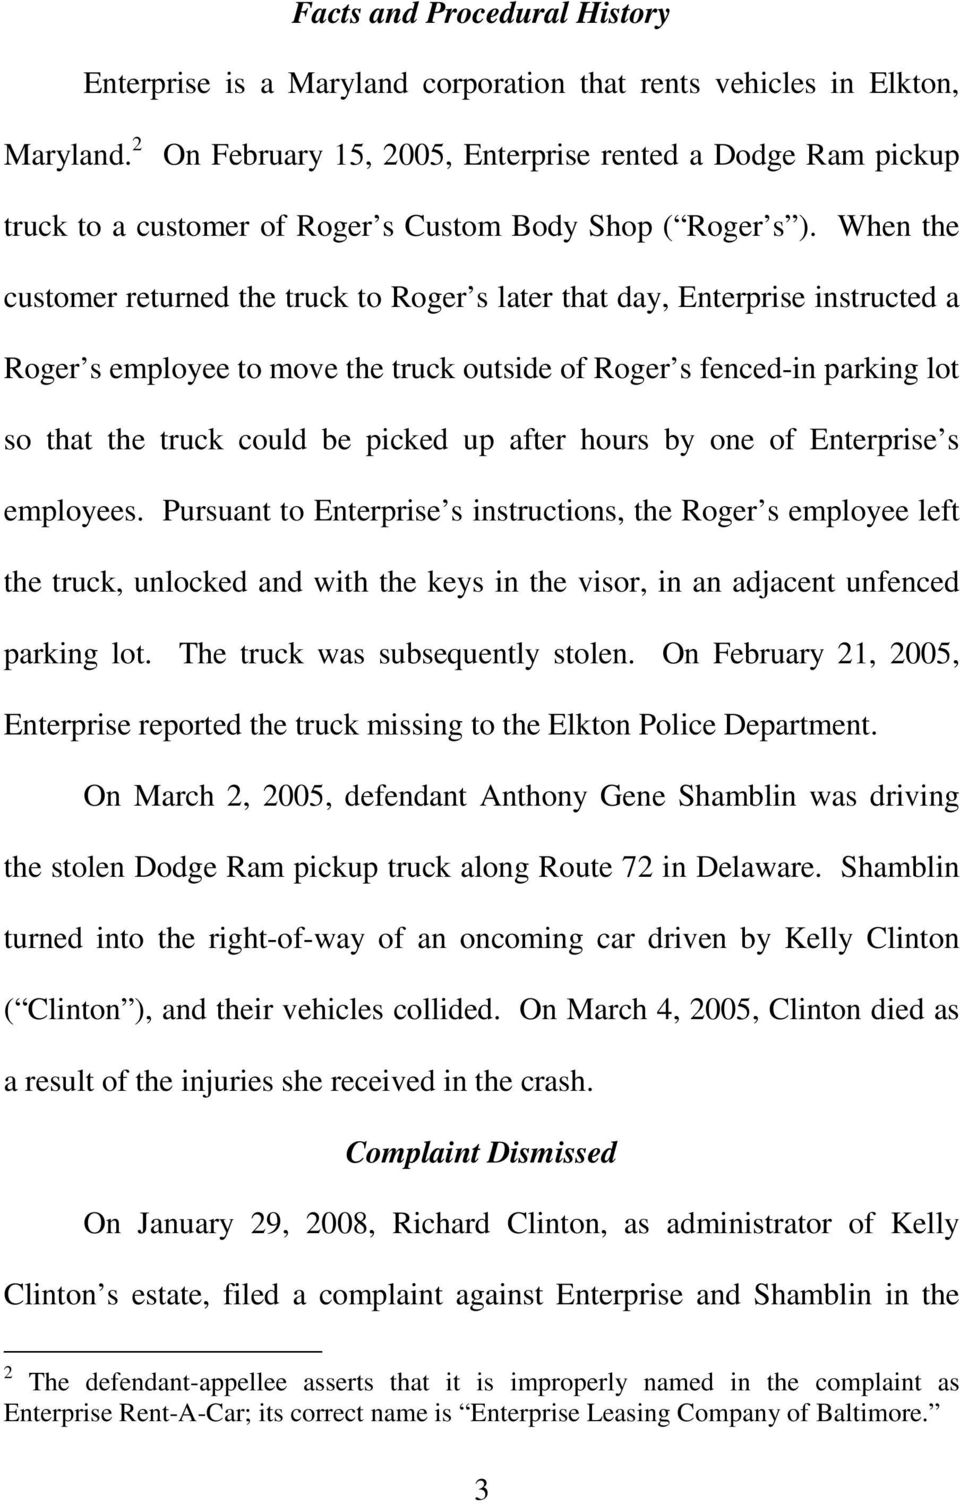 When the customer returned the truck to Roger s later that day, Enterprise instructed a Roger s employee to move the truck outside of Roger s fenced-in parking lot so that the truck could be picked